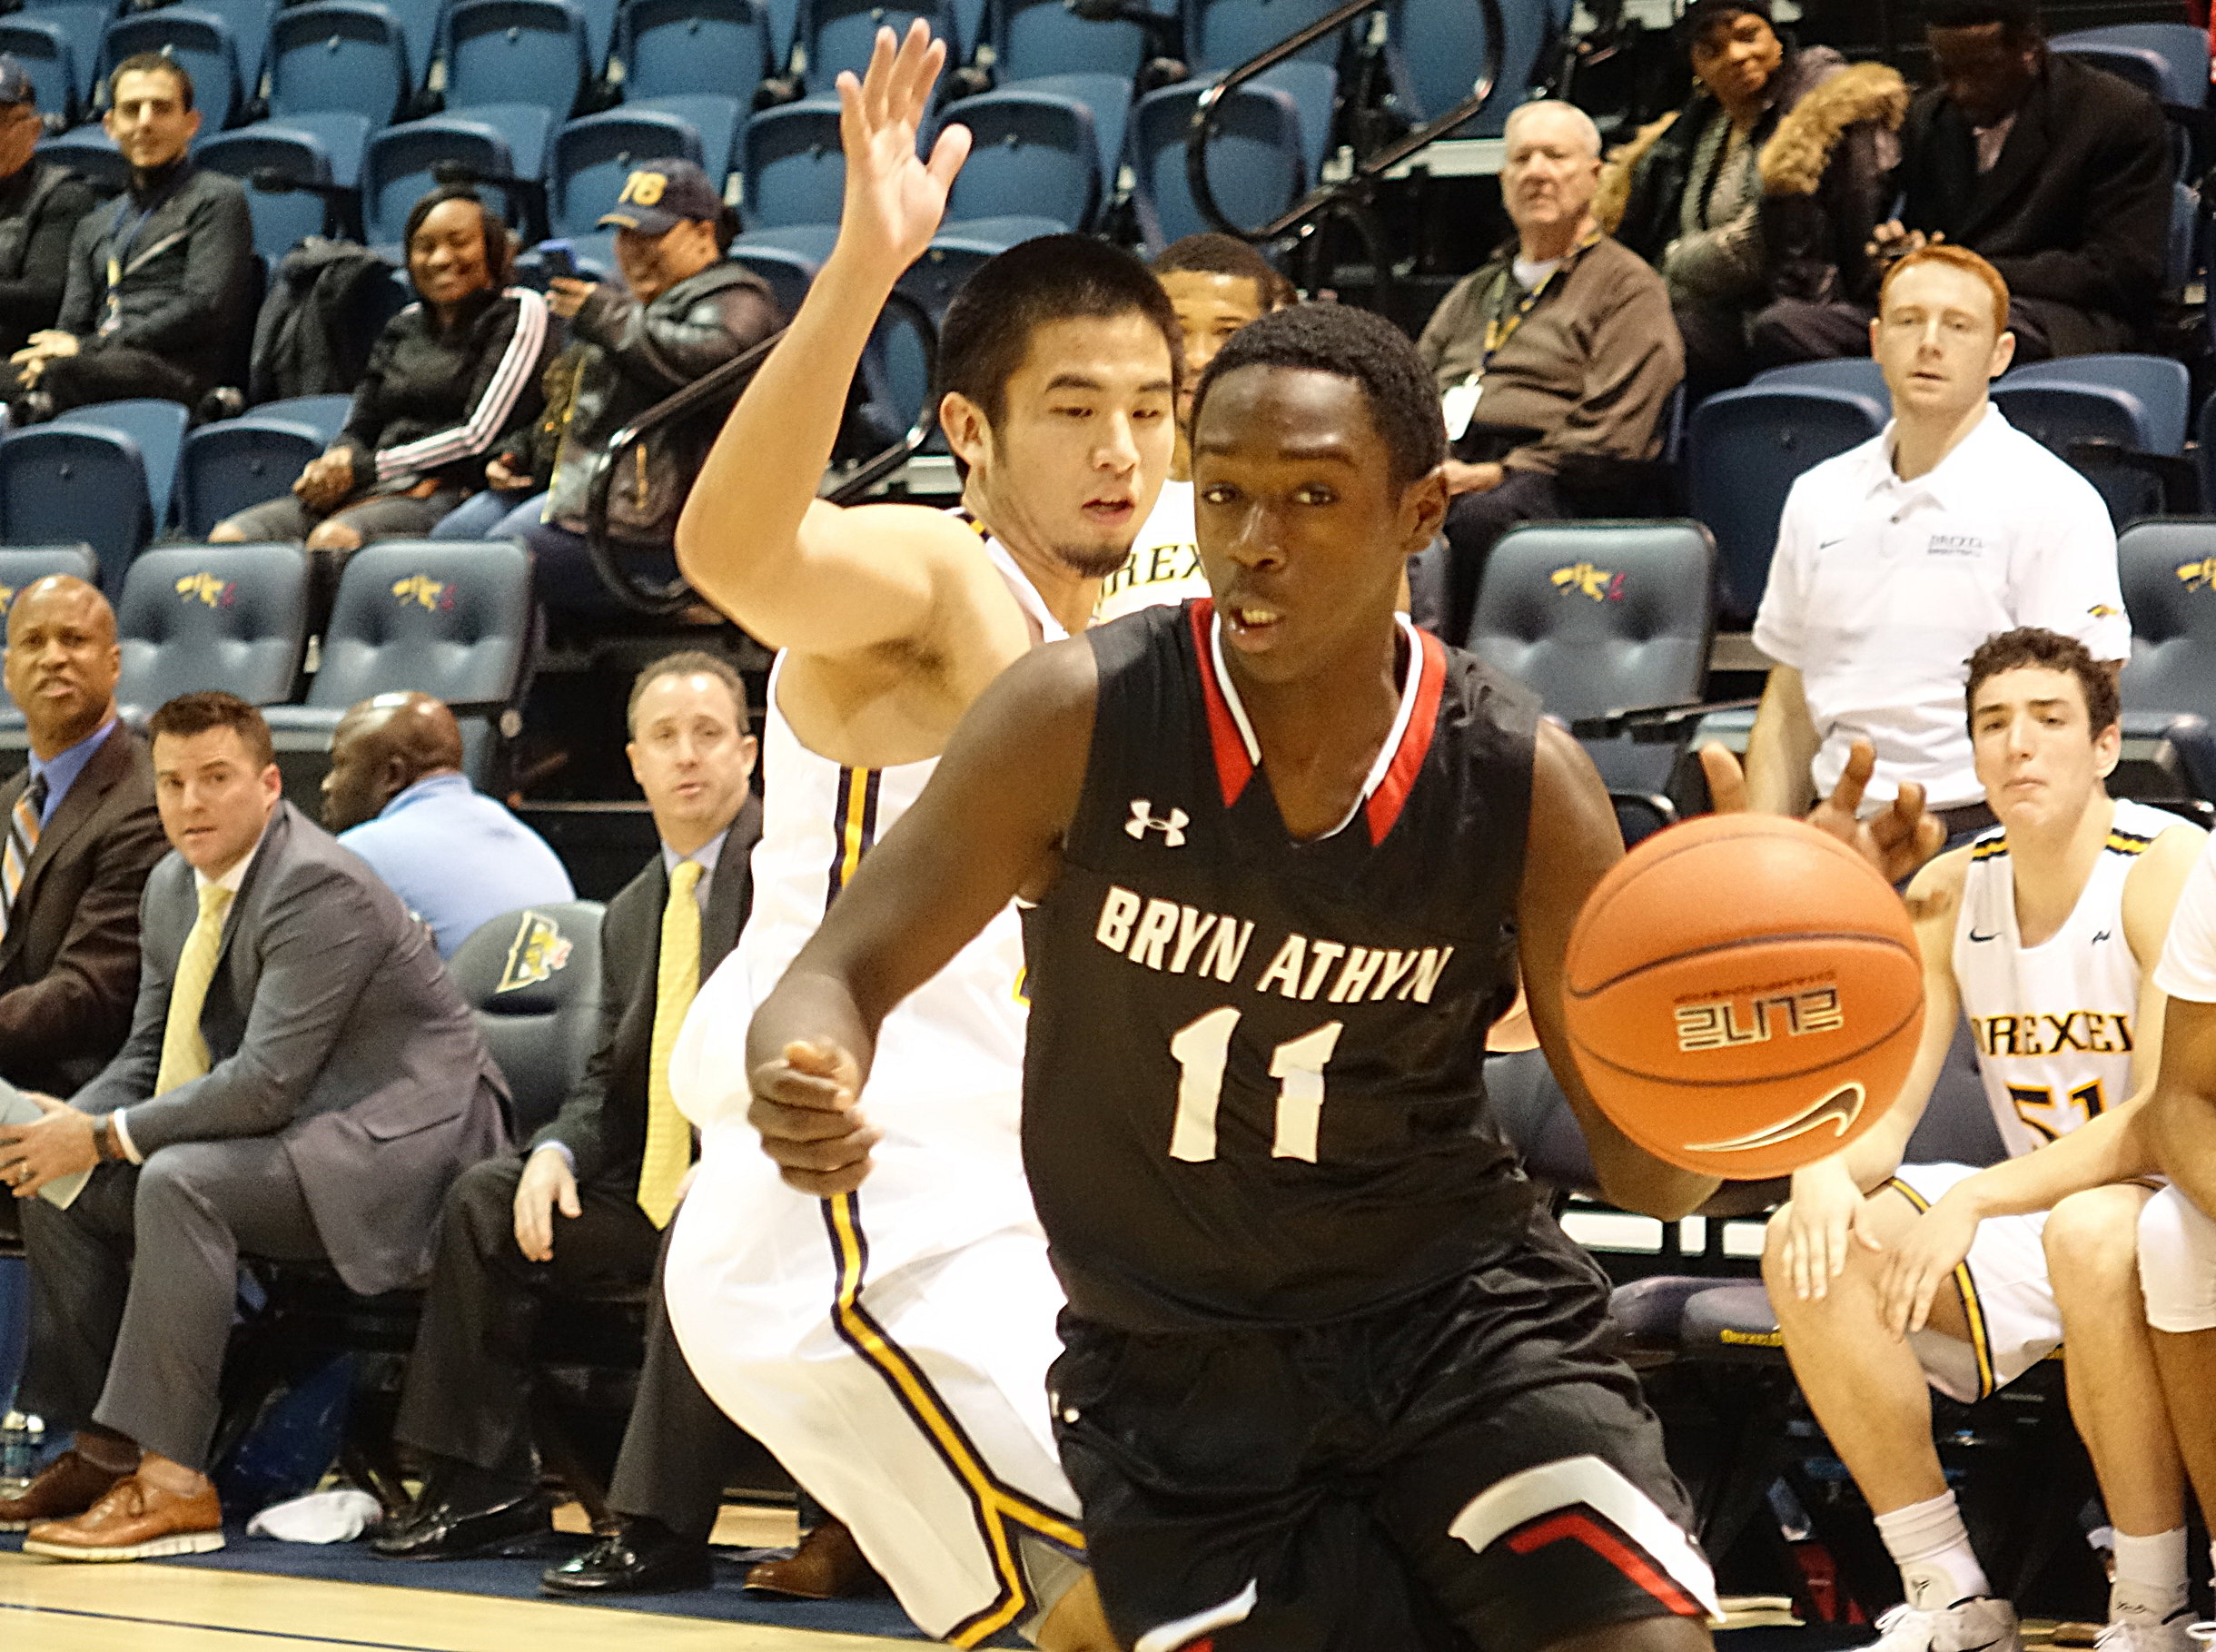 Bryn Athyn´s Tariq Moore drives baseline against Drexel´s Kevin Doi.